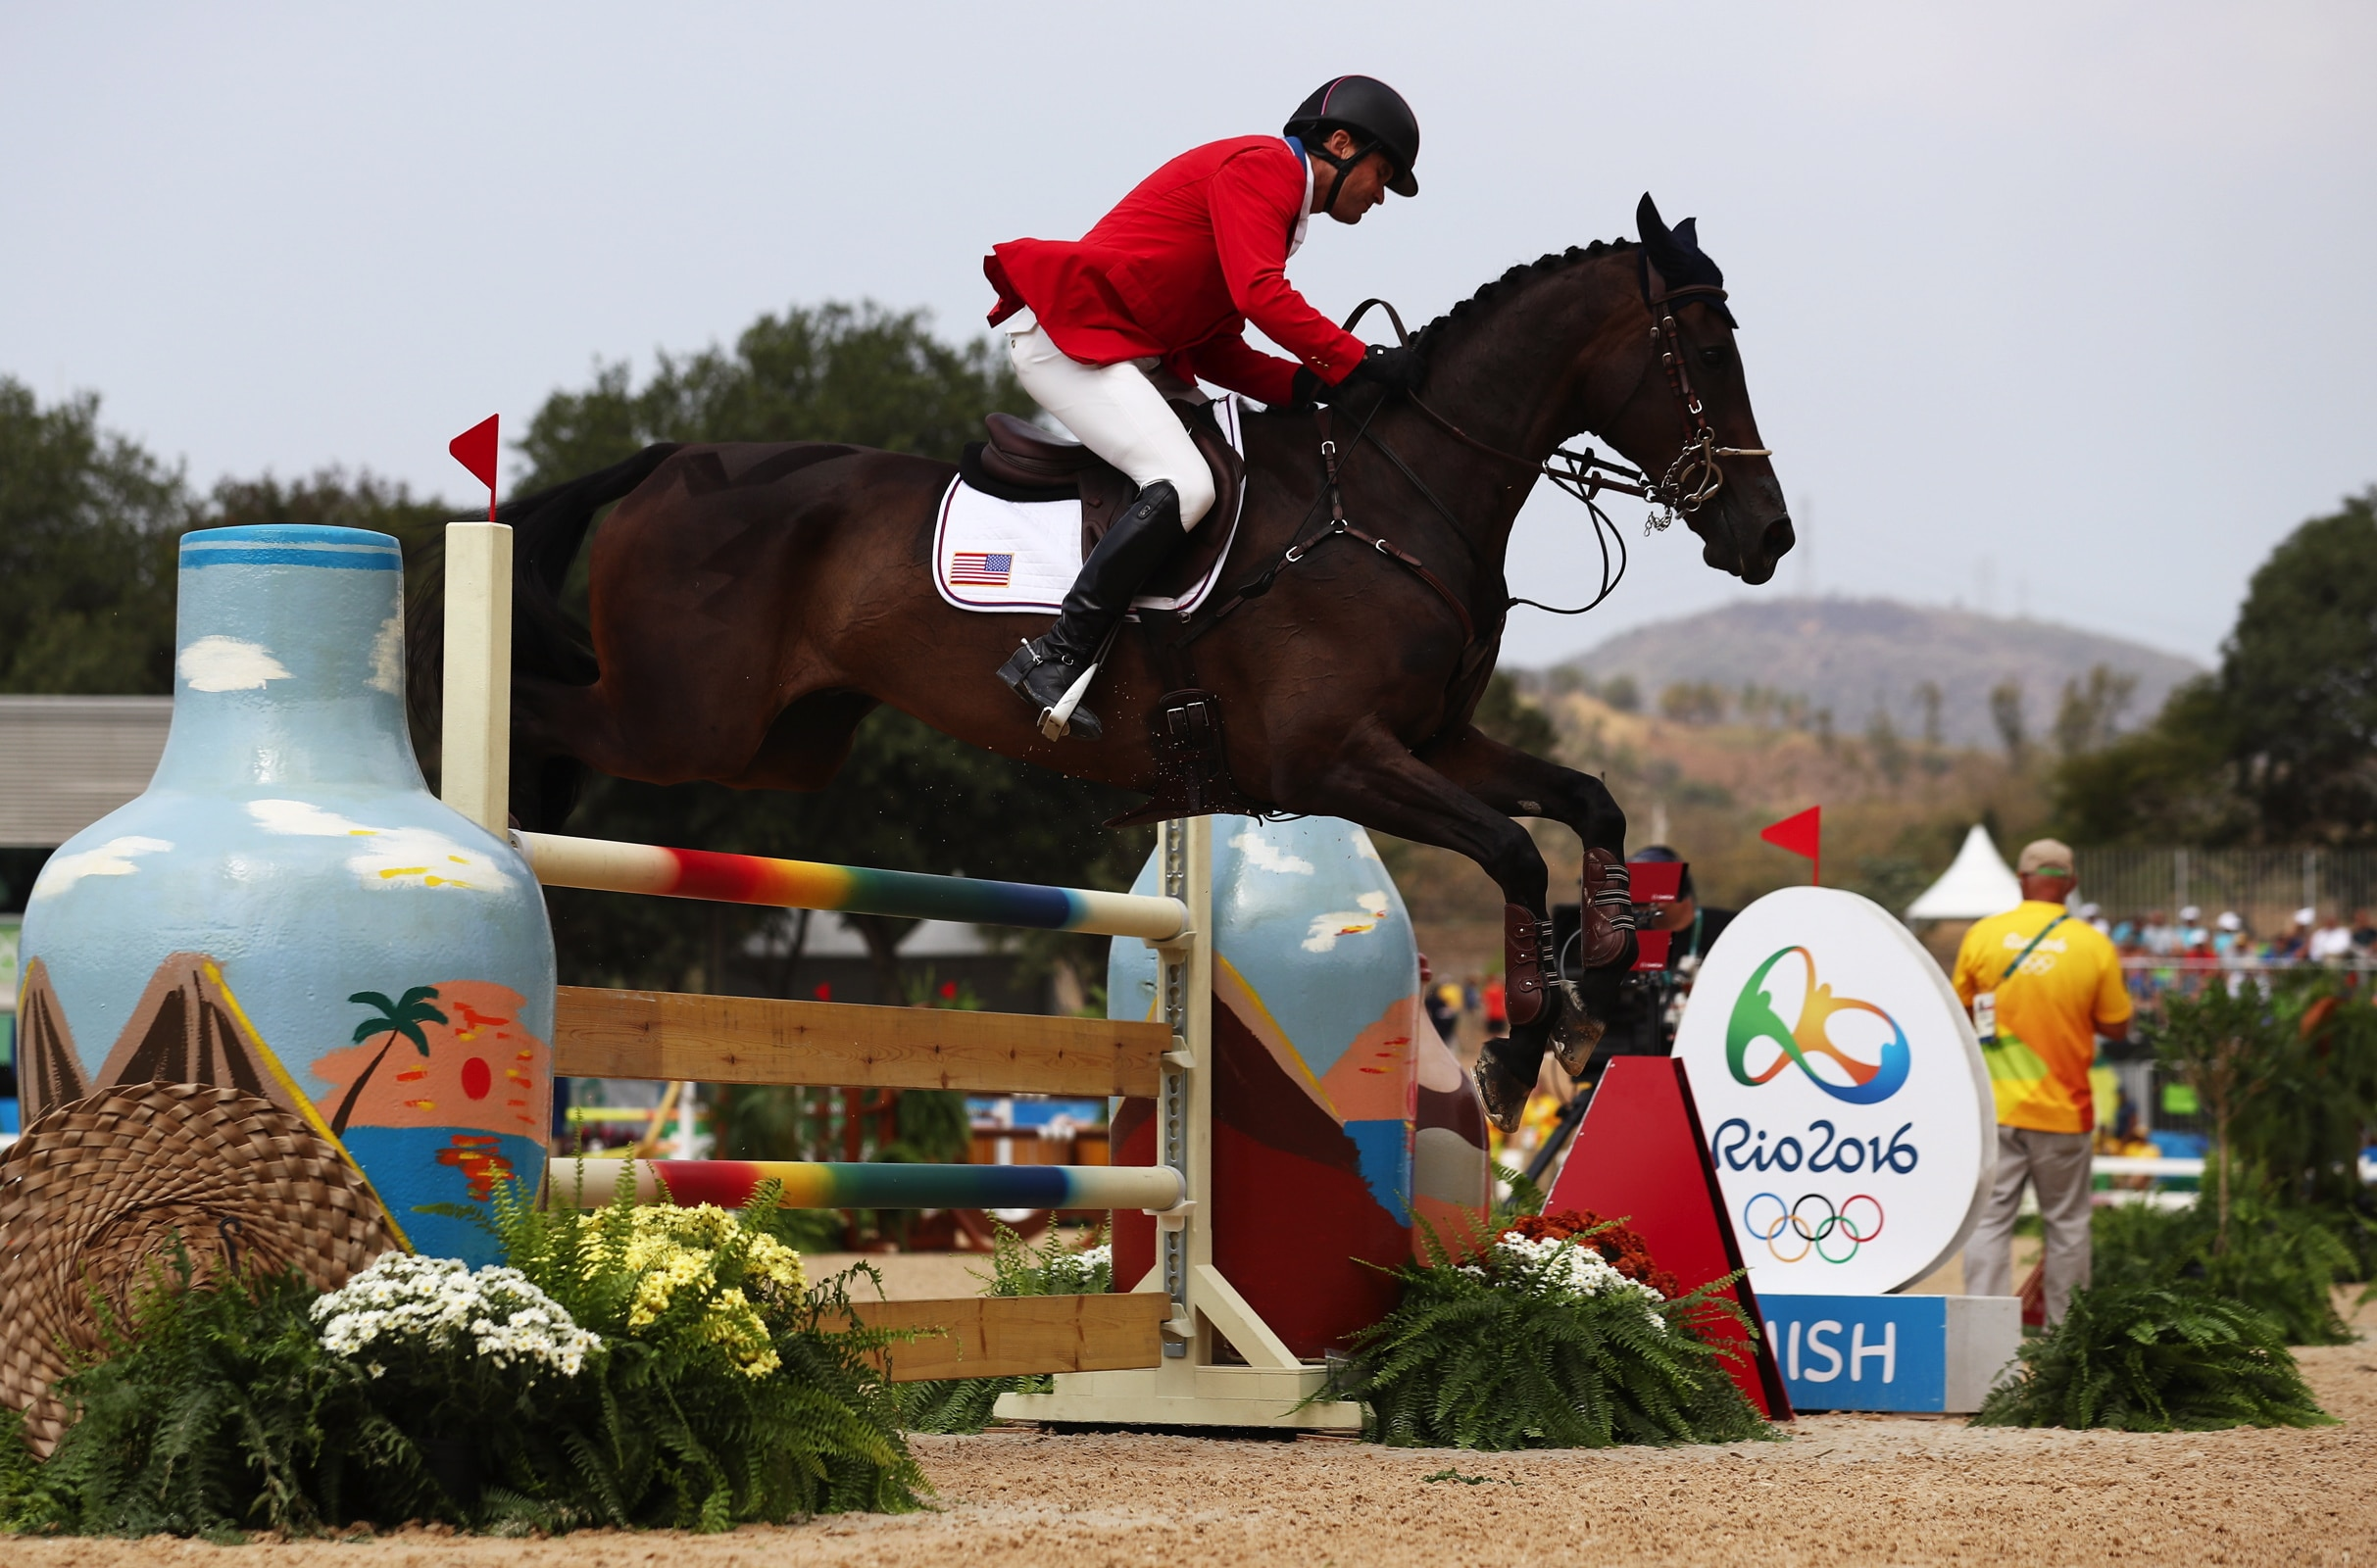 Equestrian Jumping - Team Mixed